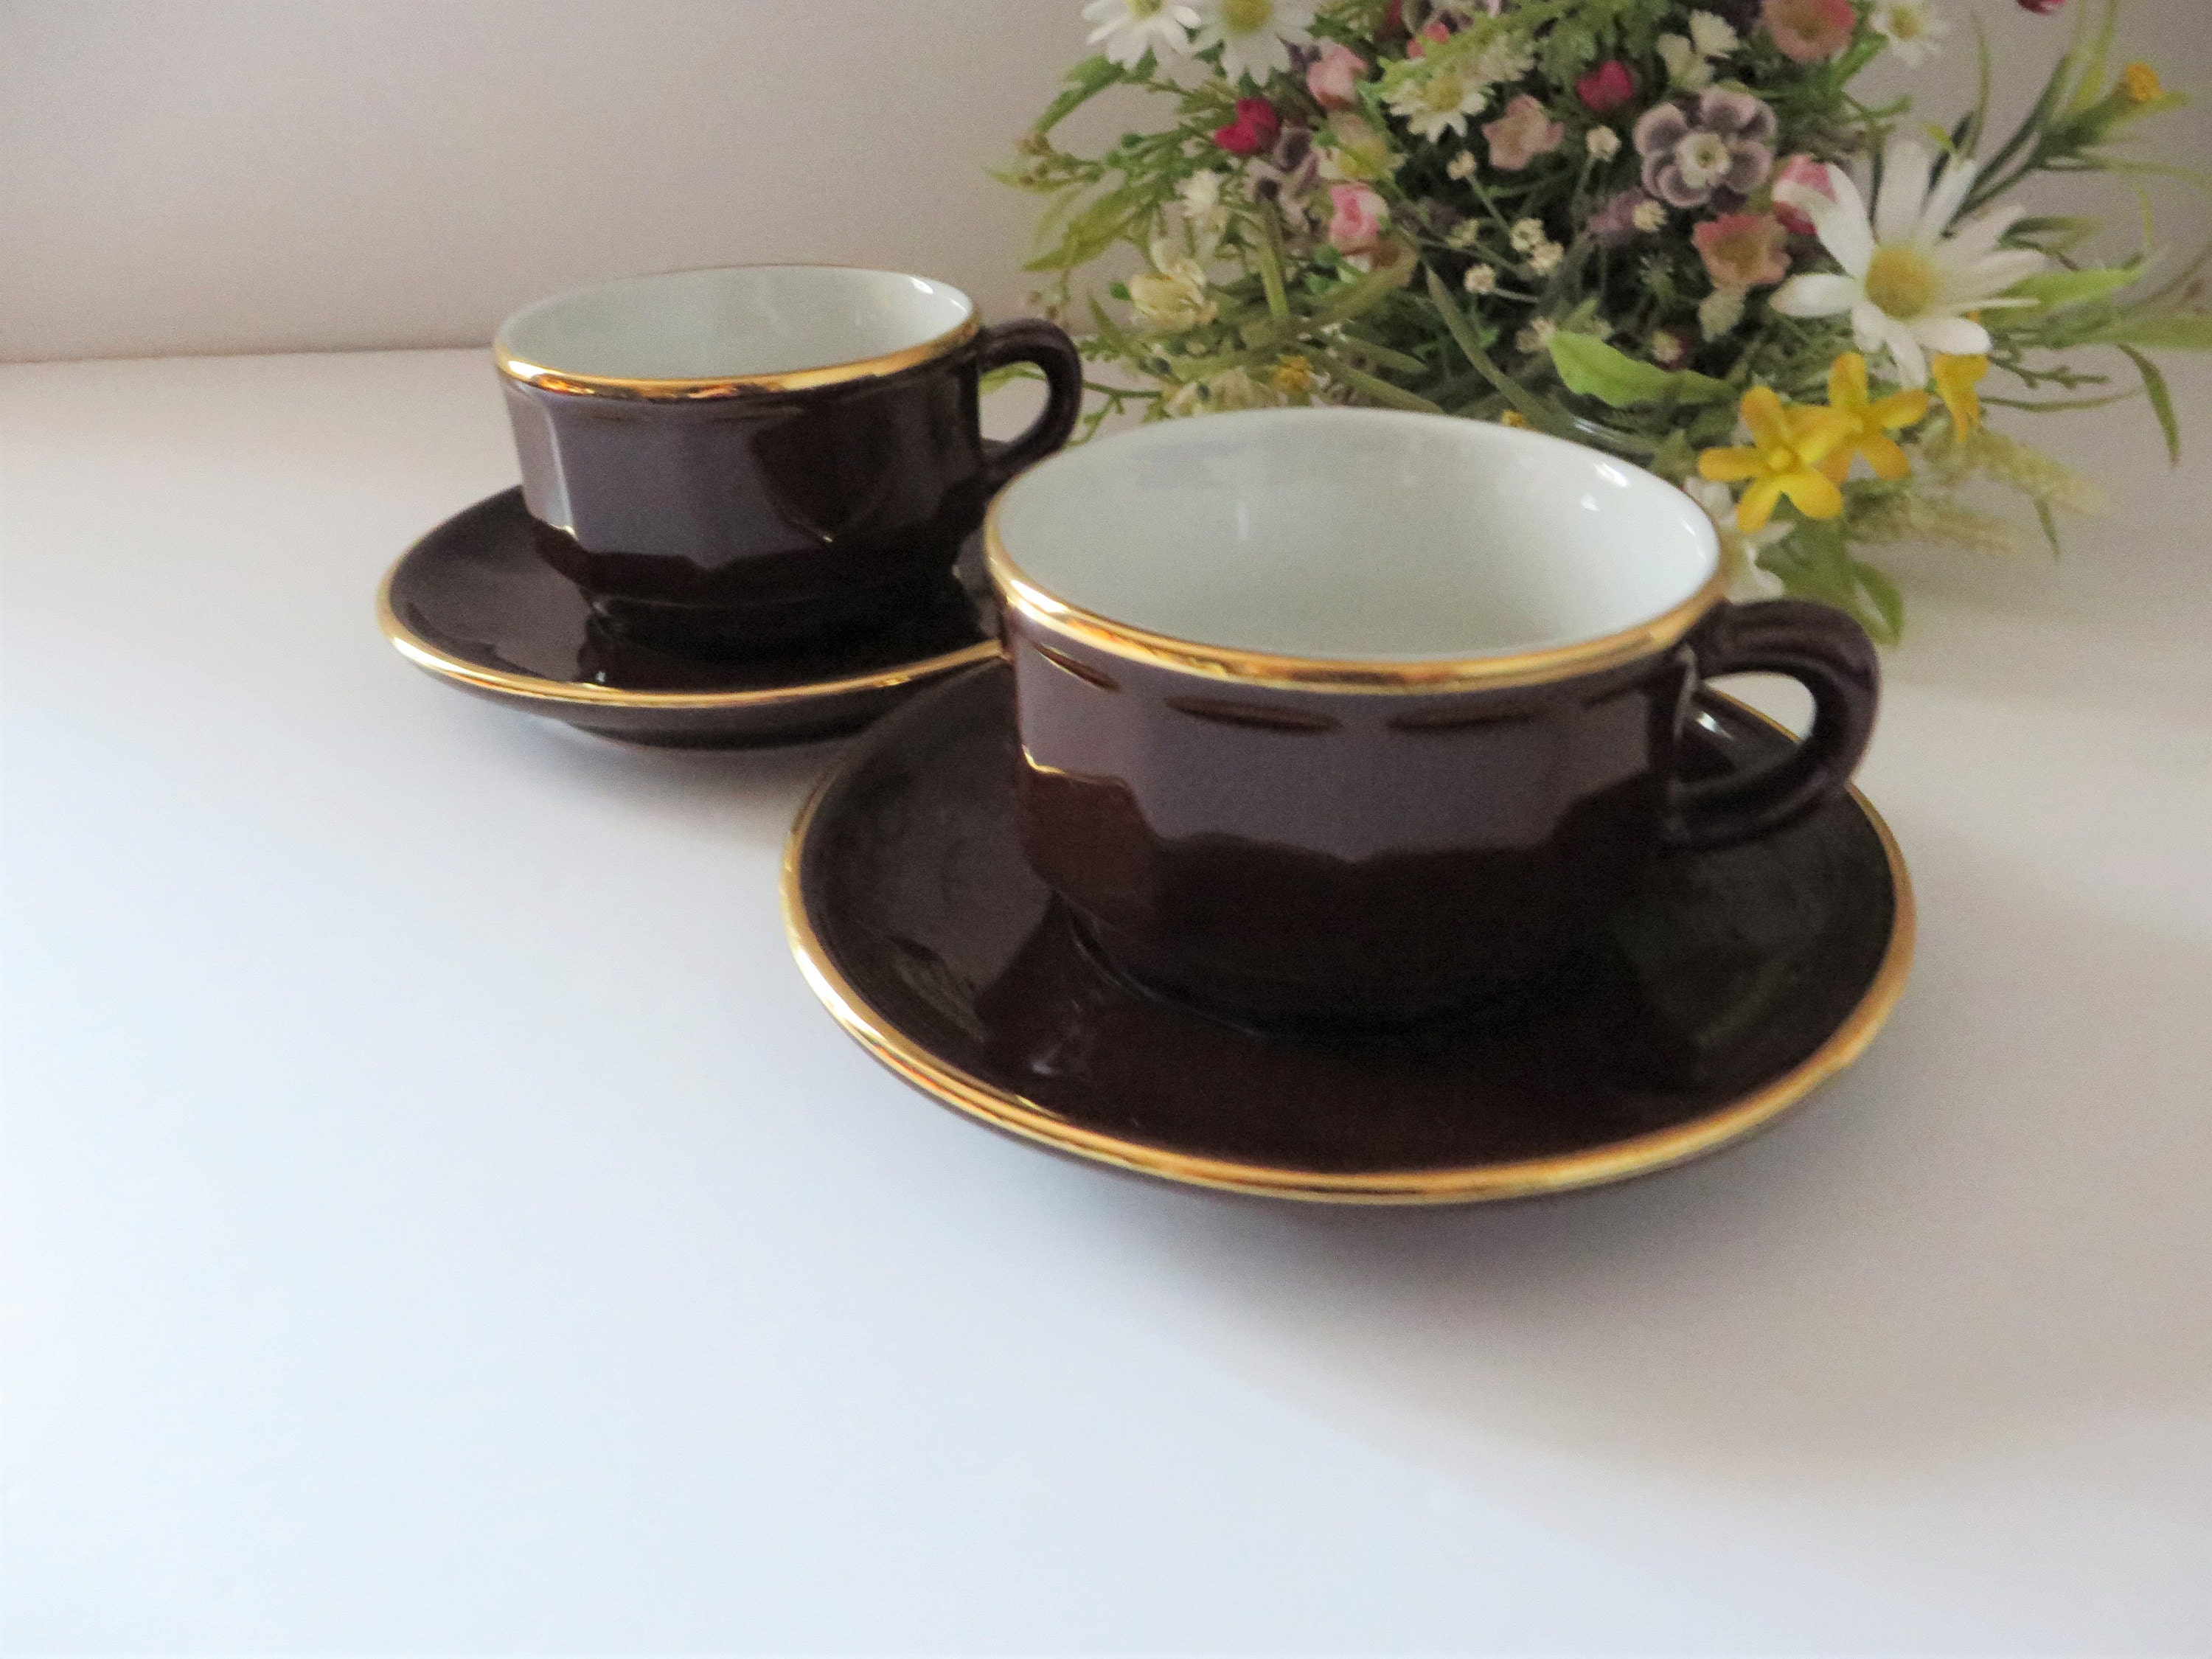 Apilco brown Cappuccino cup and saucer for Nestle